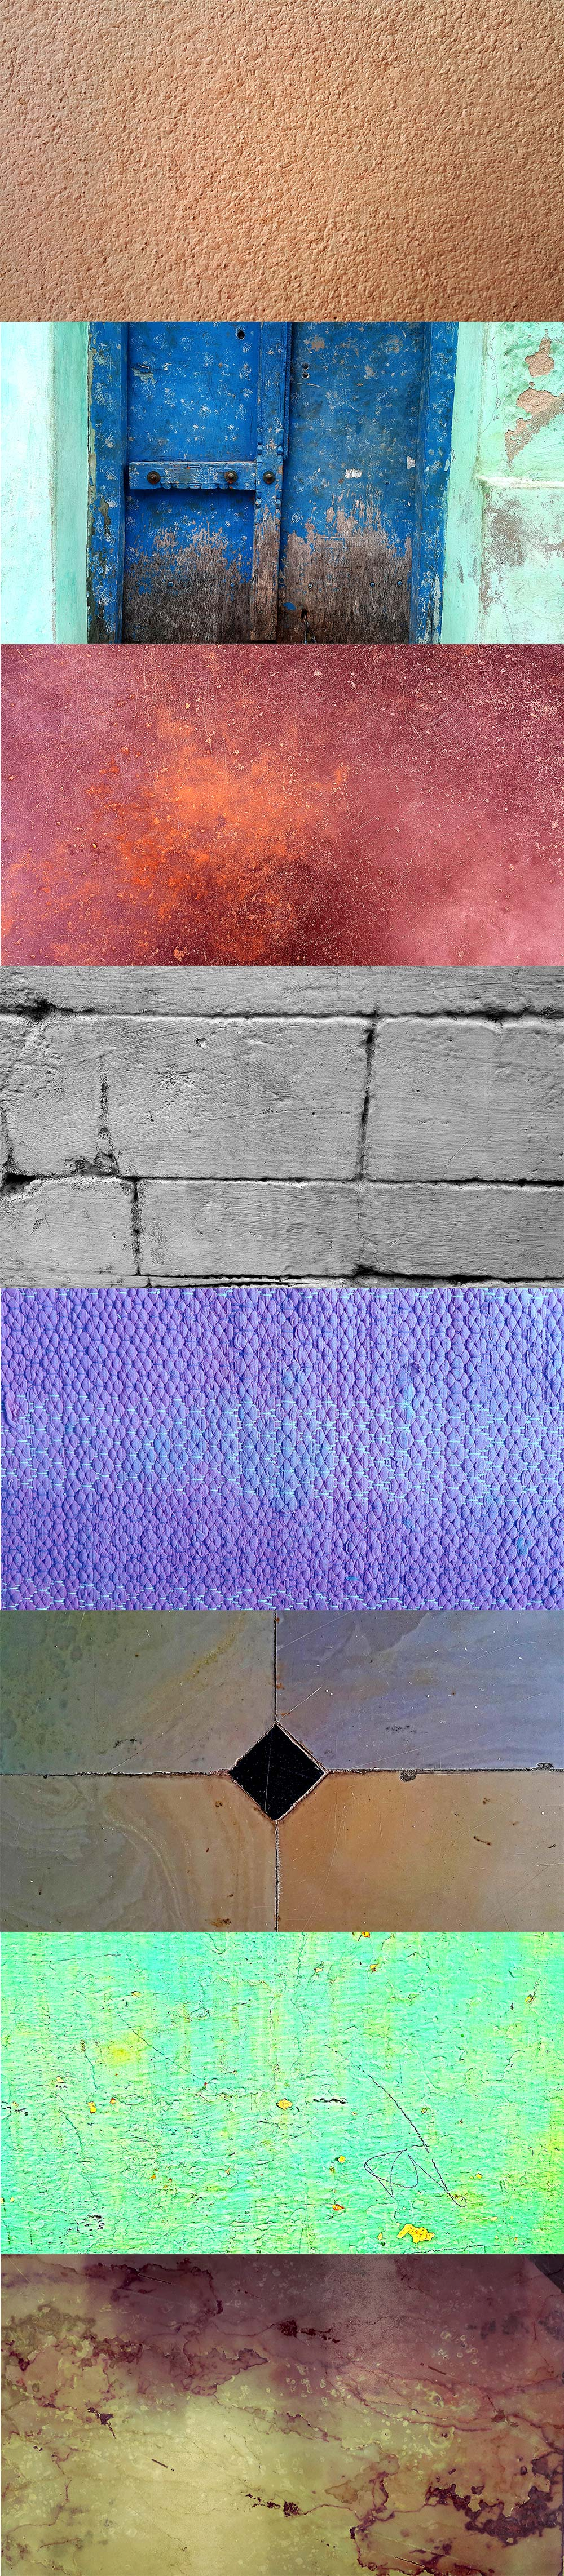 http://www.graphicsfuel.com/wp-content/uploads/2015/08/8-free-textures.jpg